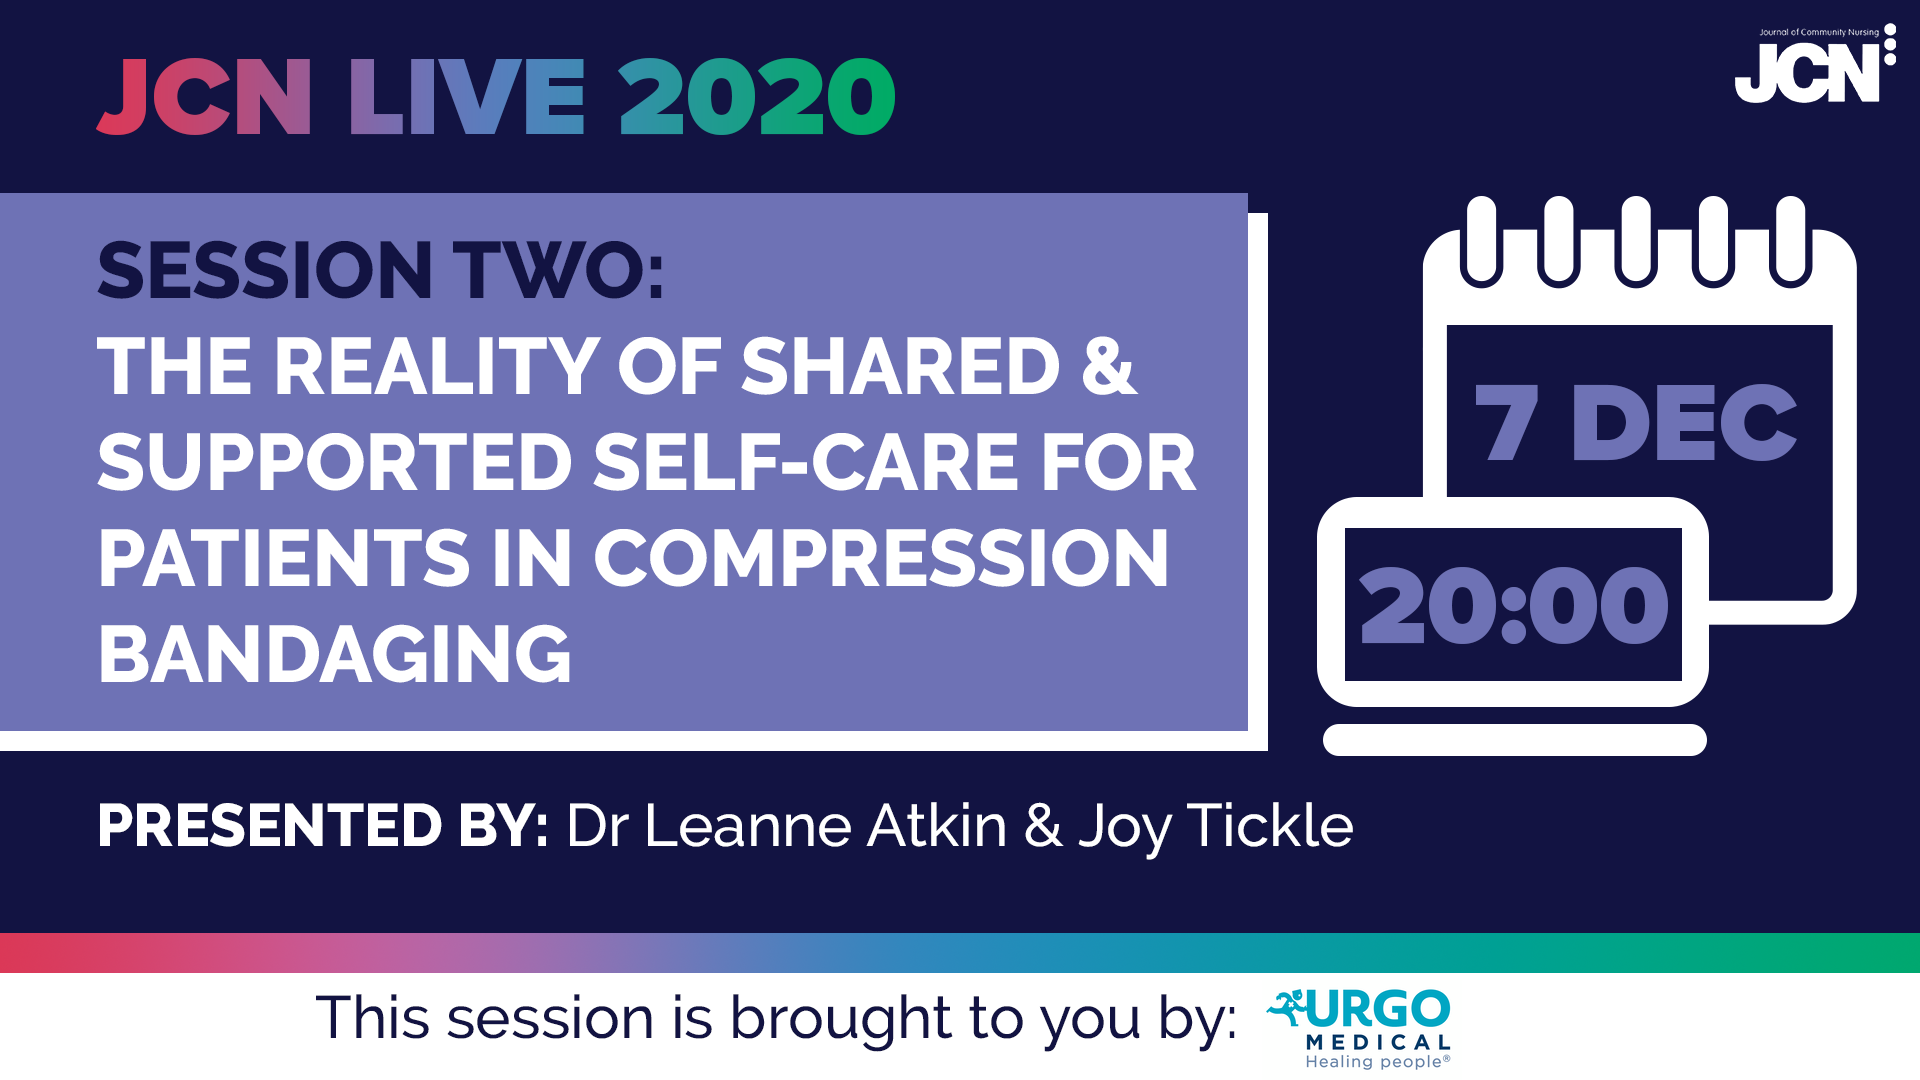 JCN Live 2020 - The reality of shared & supported self-care for patients in compression bandaging